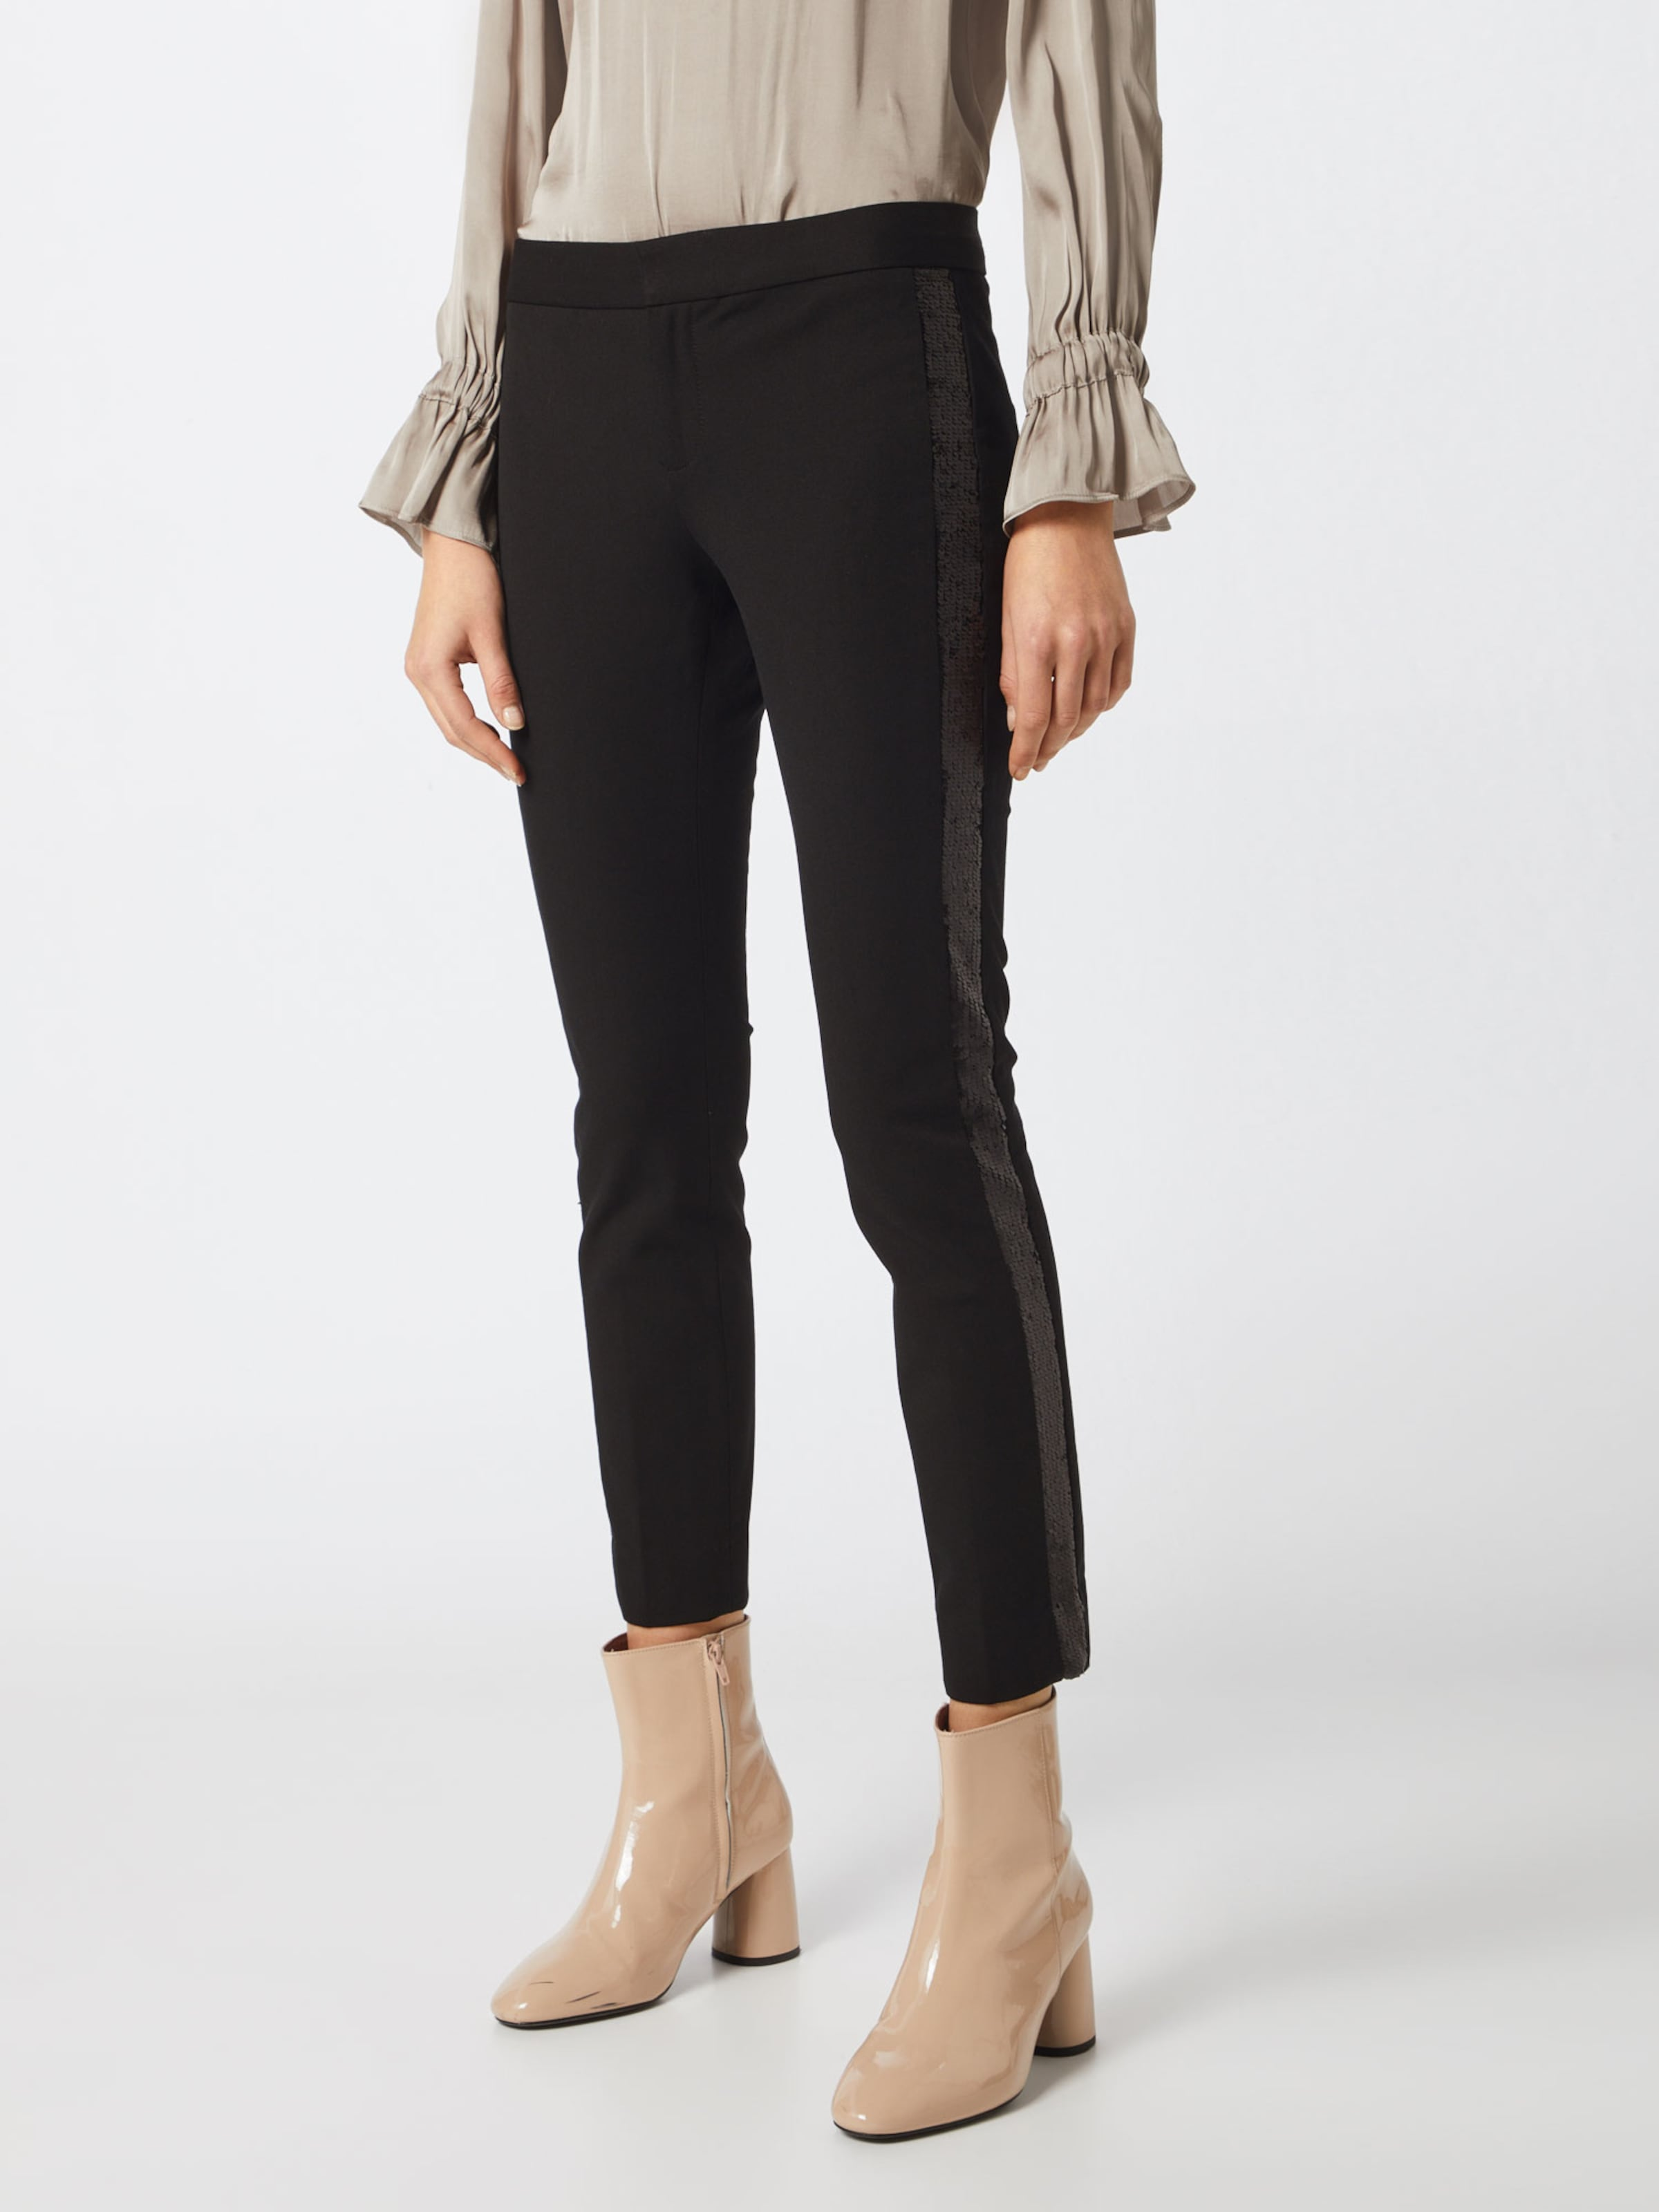 Banana En Stripe' Noir Republic 'sloan Pantalon Tux Sequence qzMpVSU